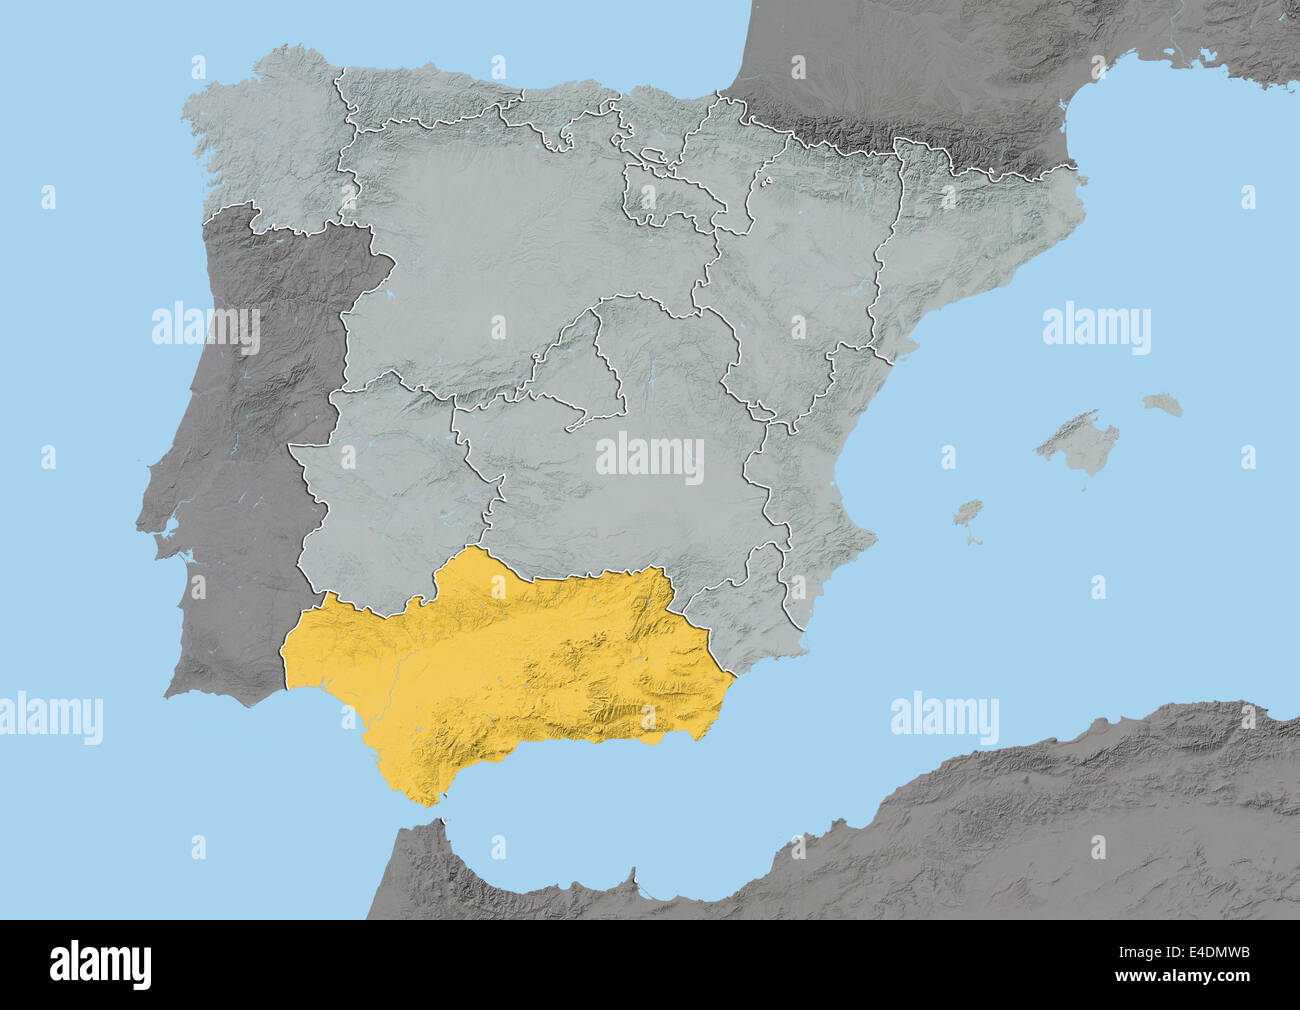 Andalusia Cartina Geografica.Andalusia Spain Relief Map Stock Photo 71601863 Alamy